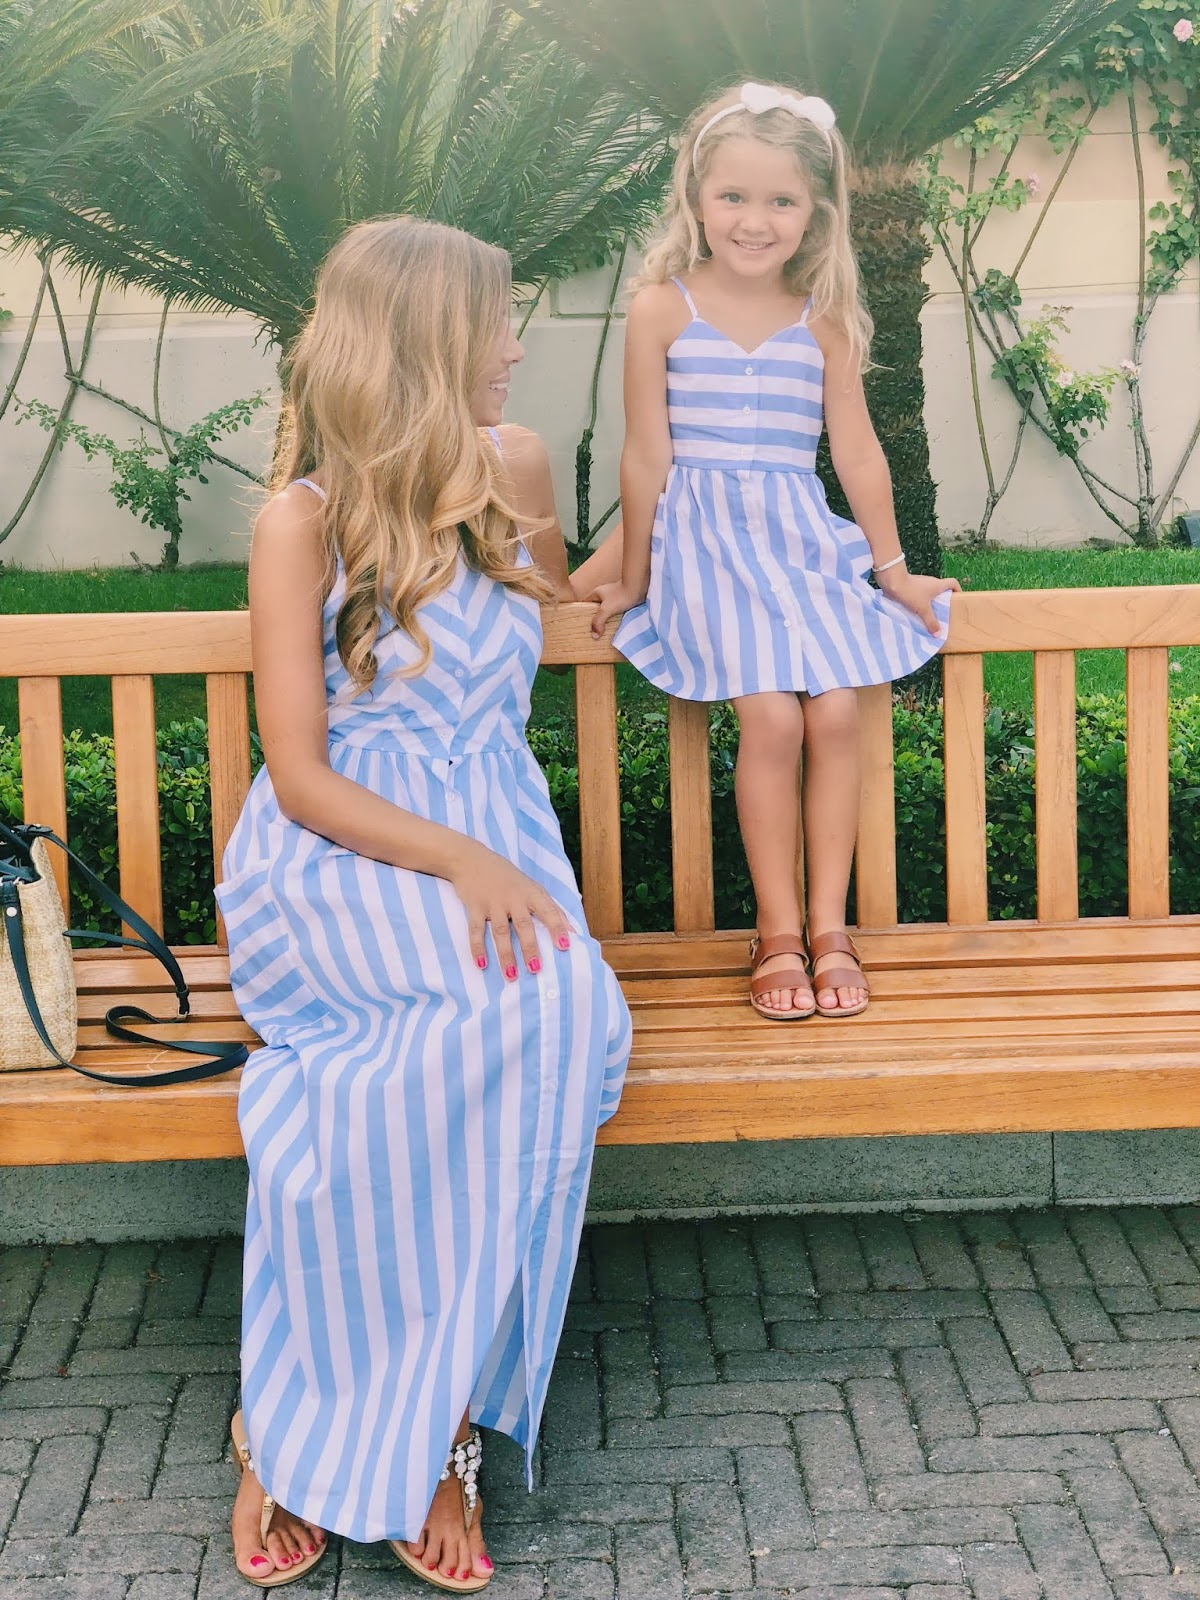 matchy outfits for mum and girl